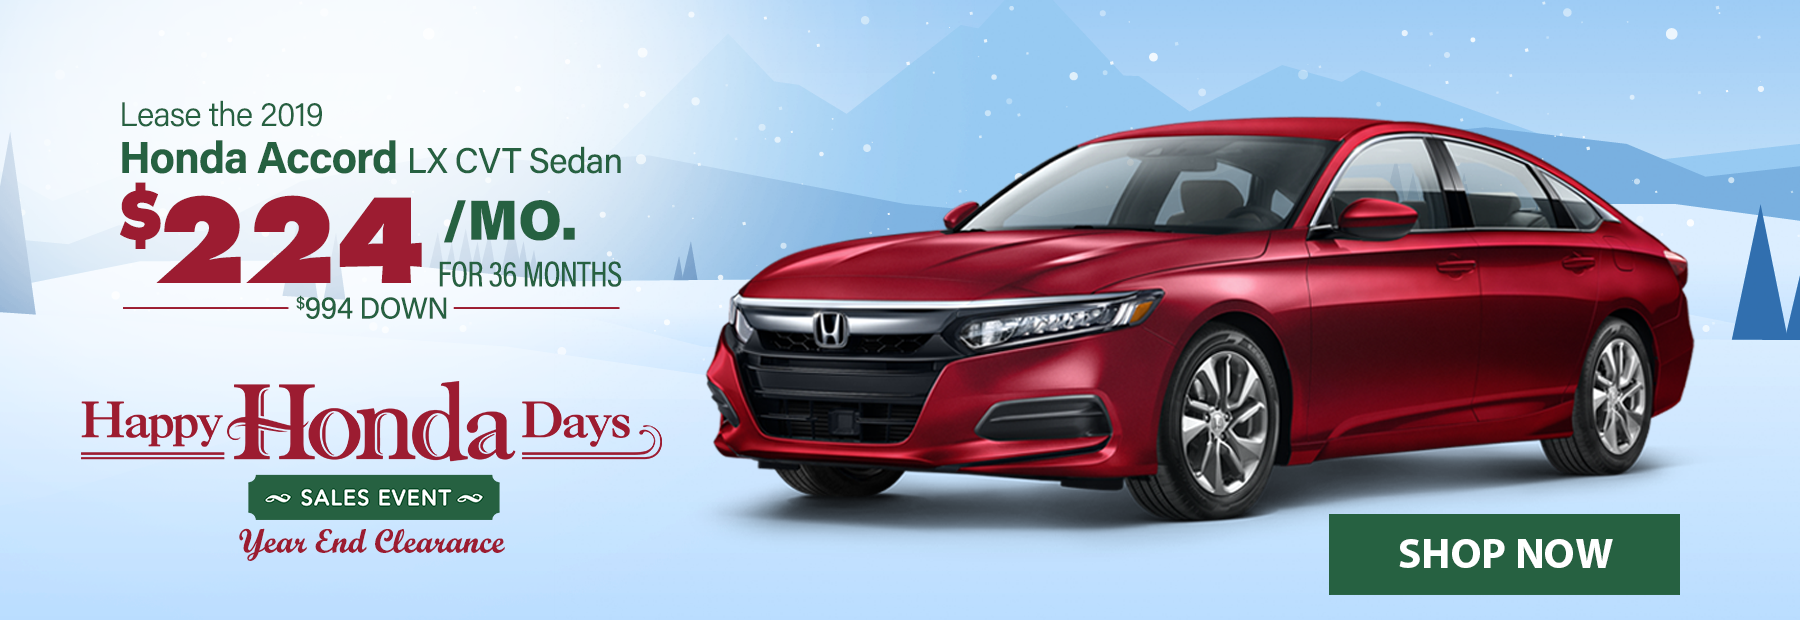 2019-honda-accord-lease-special-cincinnati